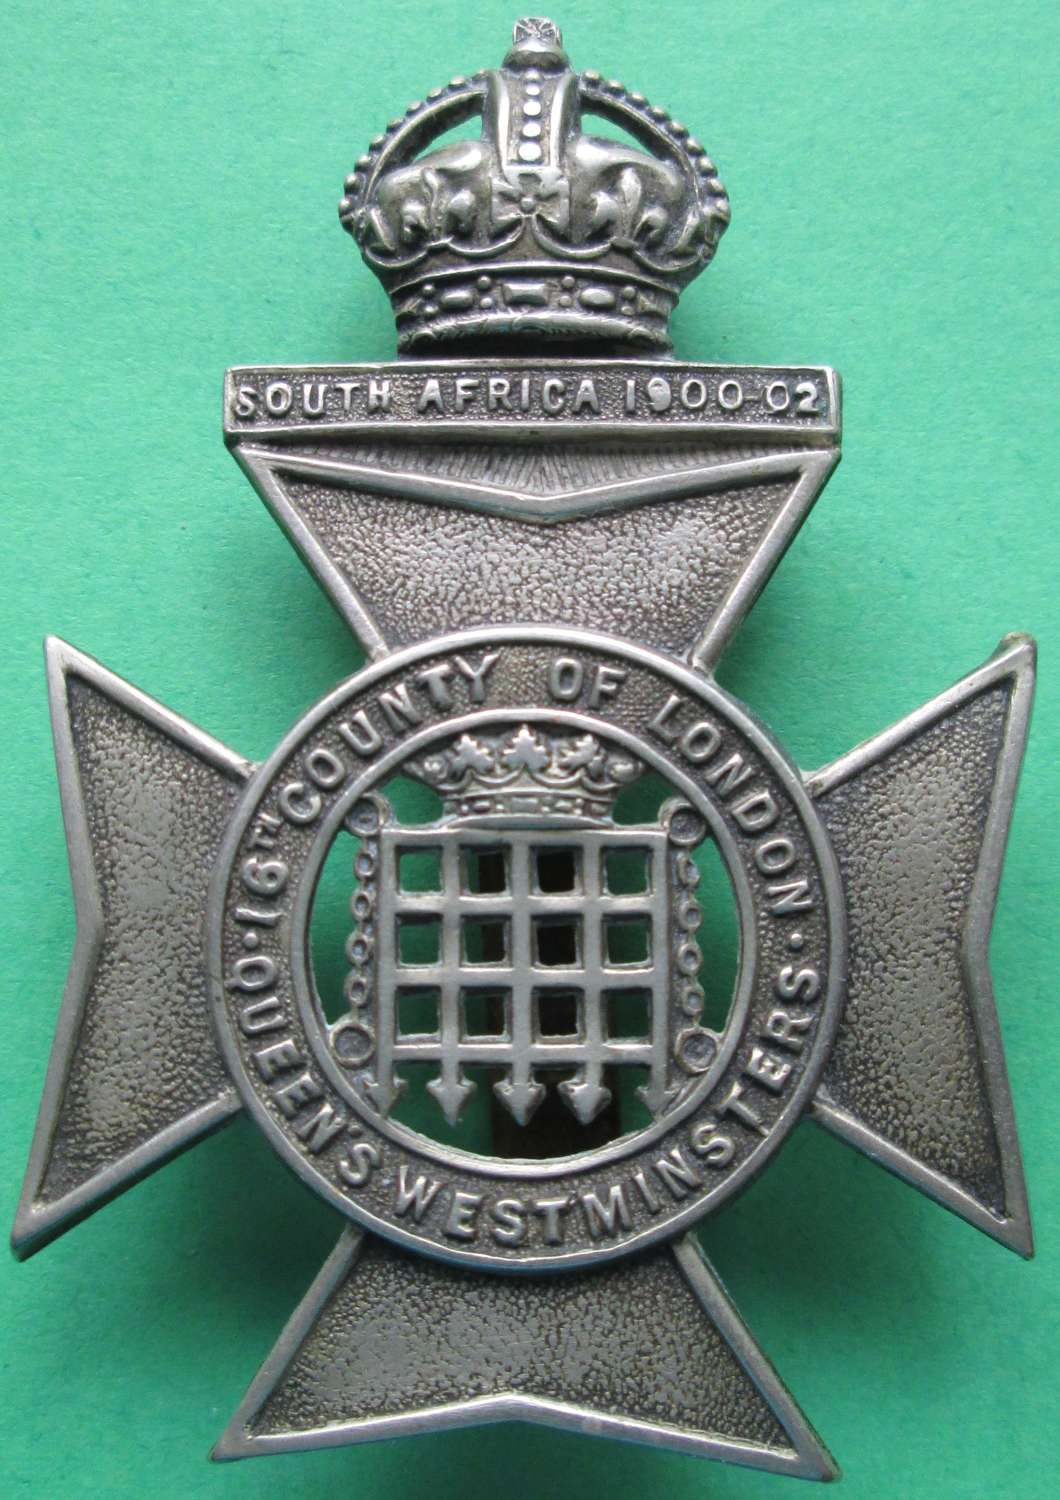 16TH (COUNTY OF LONDON) BATTALION (QUEEN'S WESTMINSTER RIFLES)